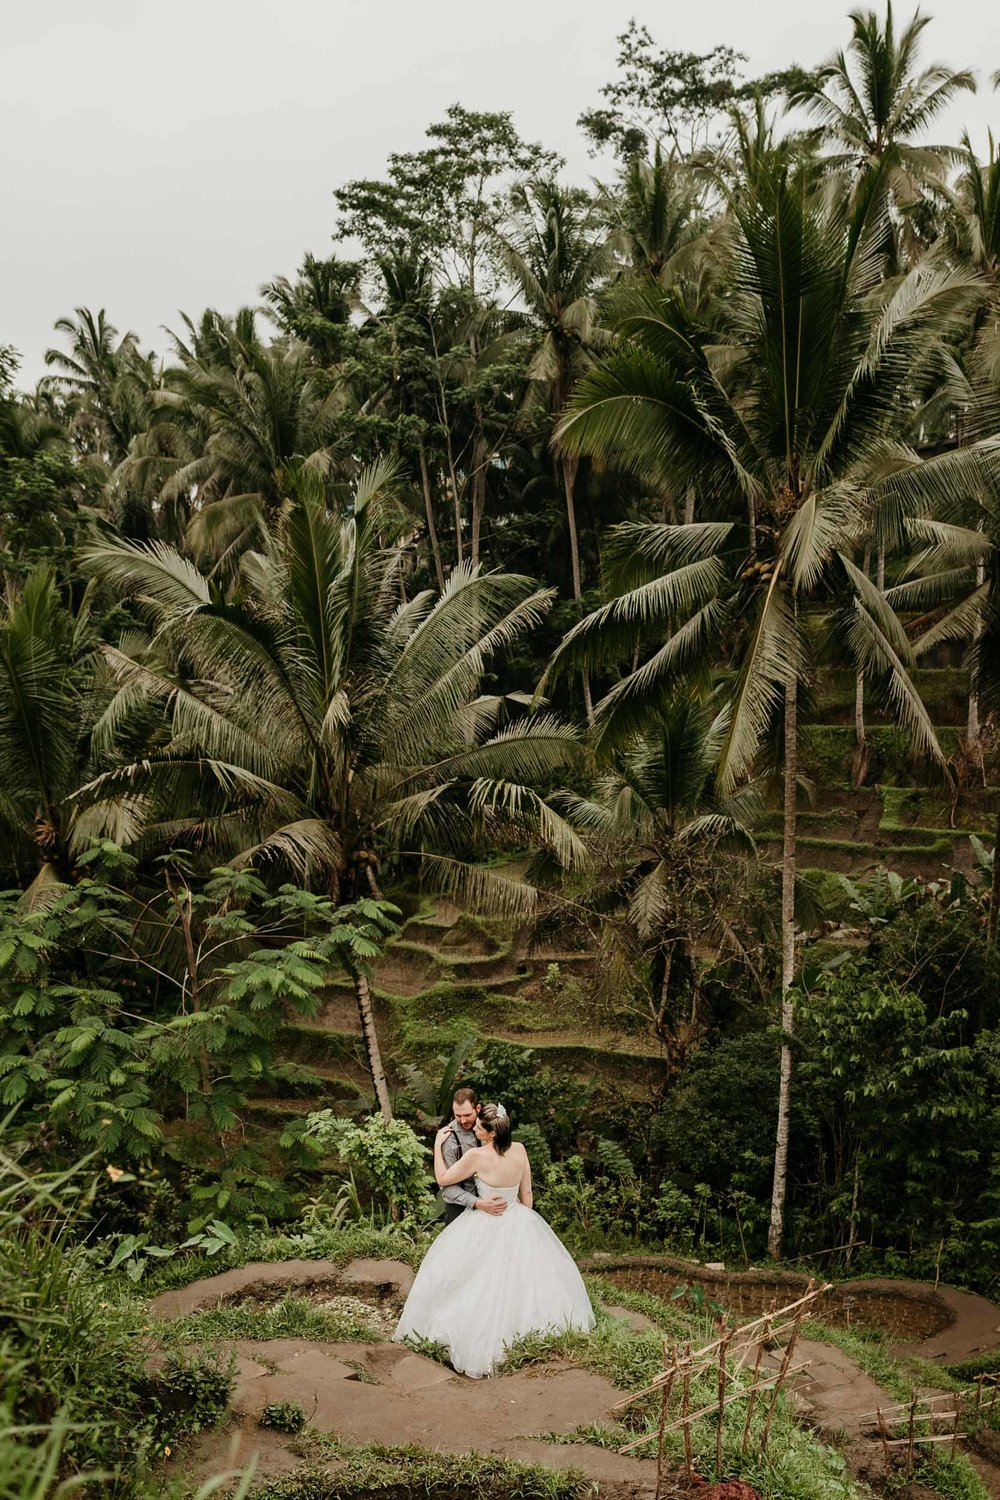 The Raw Photographer - Cairns Wedding Photographer - Bali Ubud Destination Photography - Travel - Australia - Asia Wed Photo Portrait-2.jpg